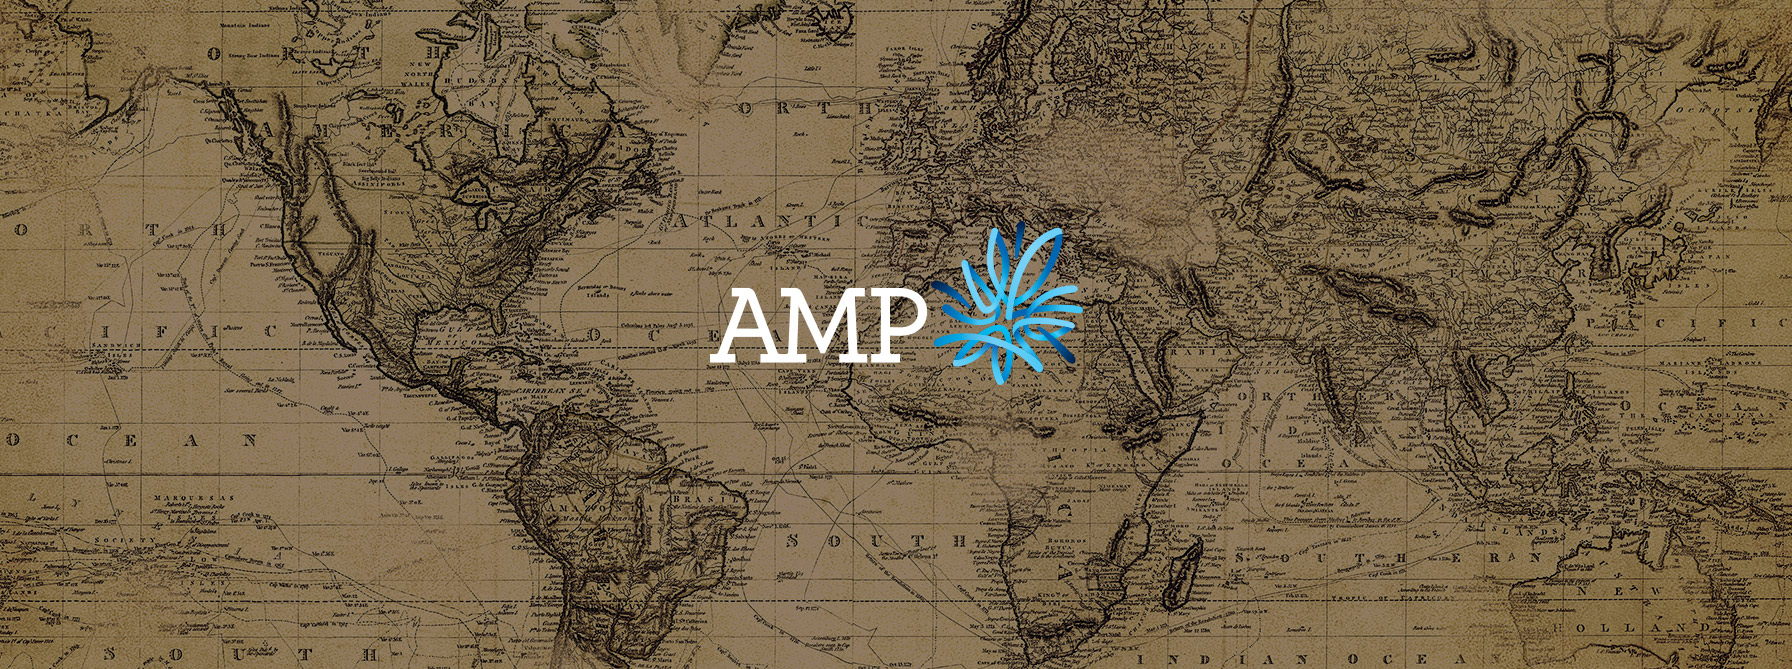 AMP and the royal commission rebuilding reputation